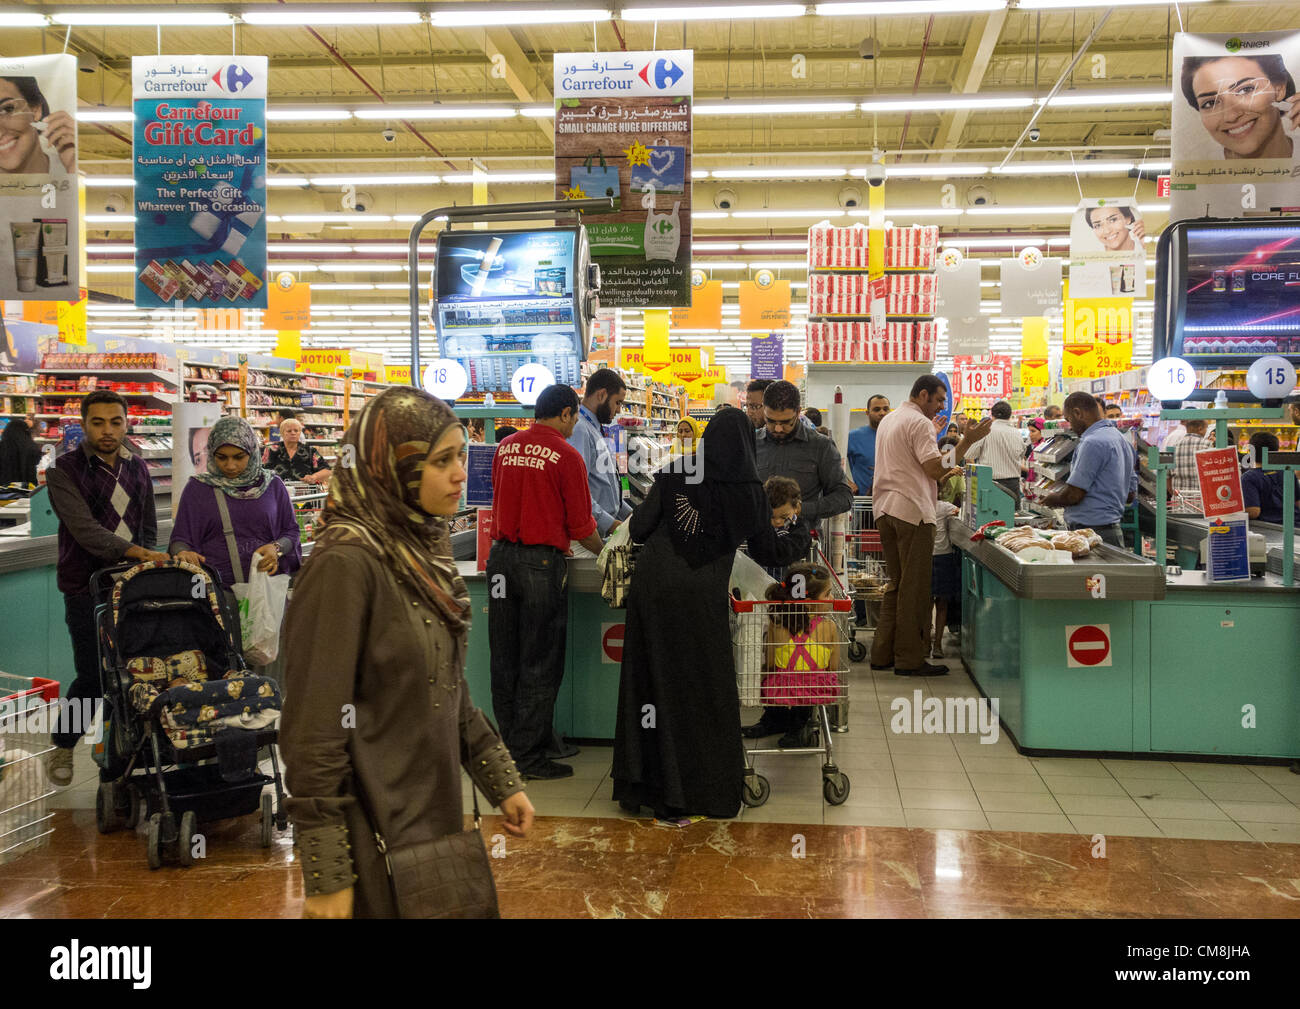 28 October 2012 Egypt Cairo. Shoppers crowding Carrefour supermarket in search of holiday Eid al-Adha bargains Stock Photo